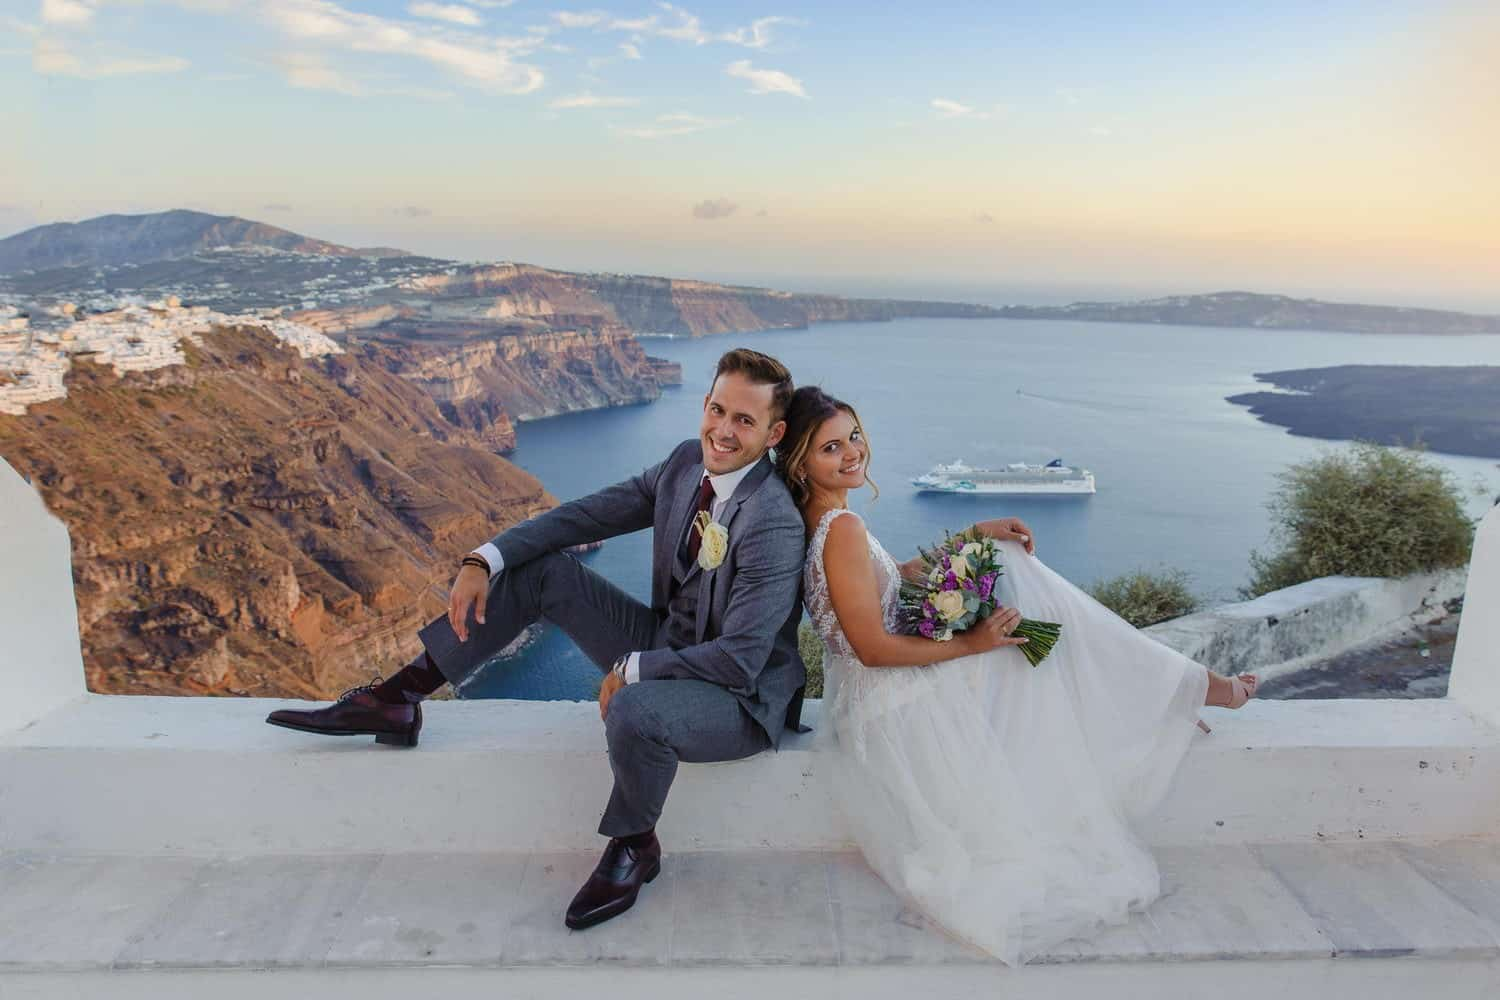 ILIAS & KATERINA | WEDDING IN IMEROVIGLI SANTORINI santorini imerovigli wedding photography 111